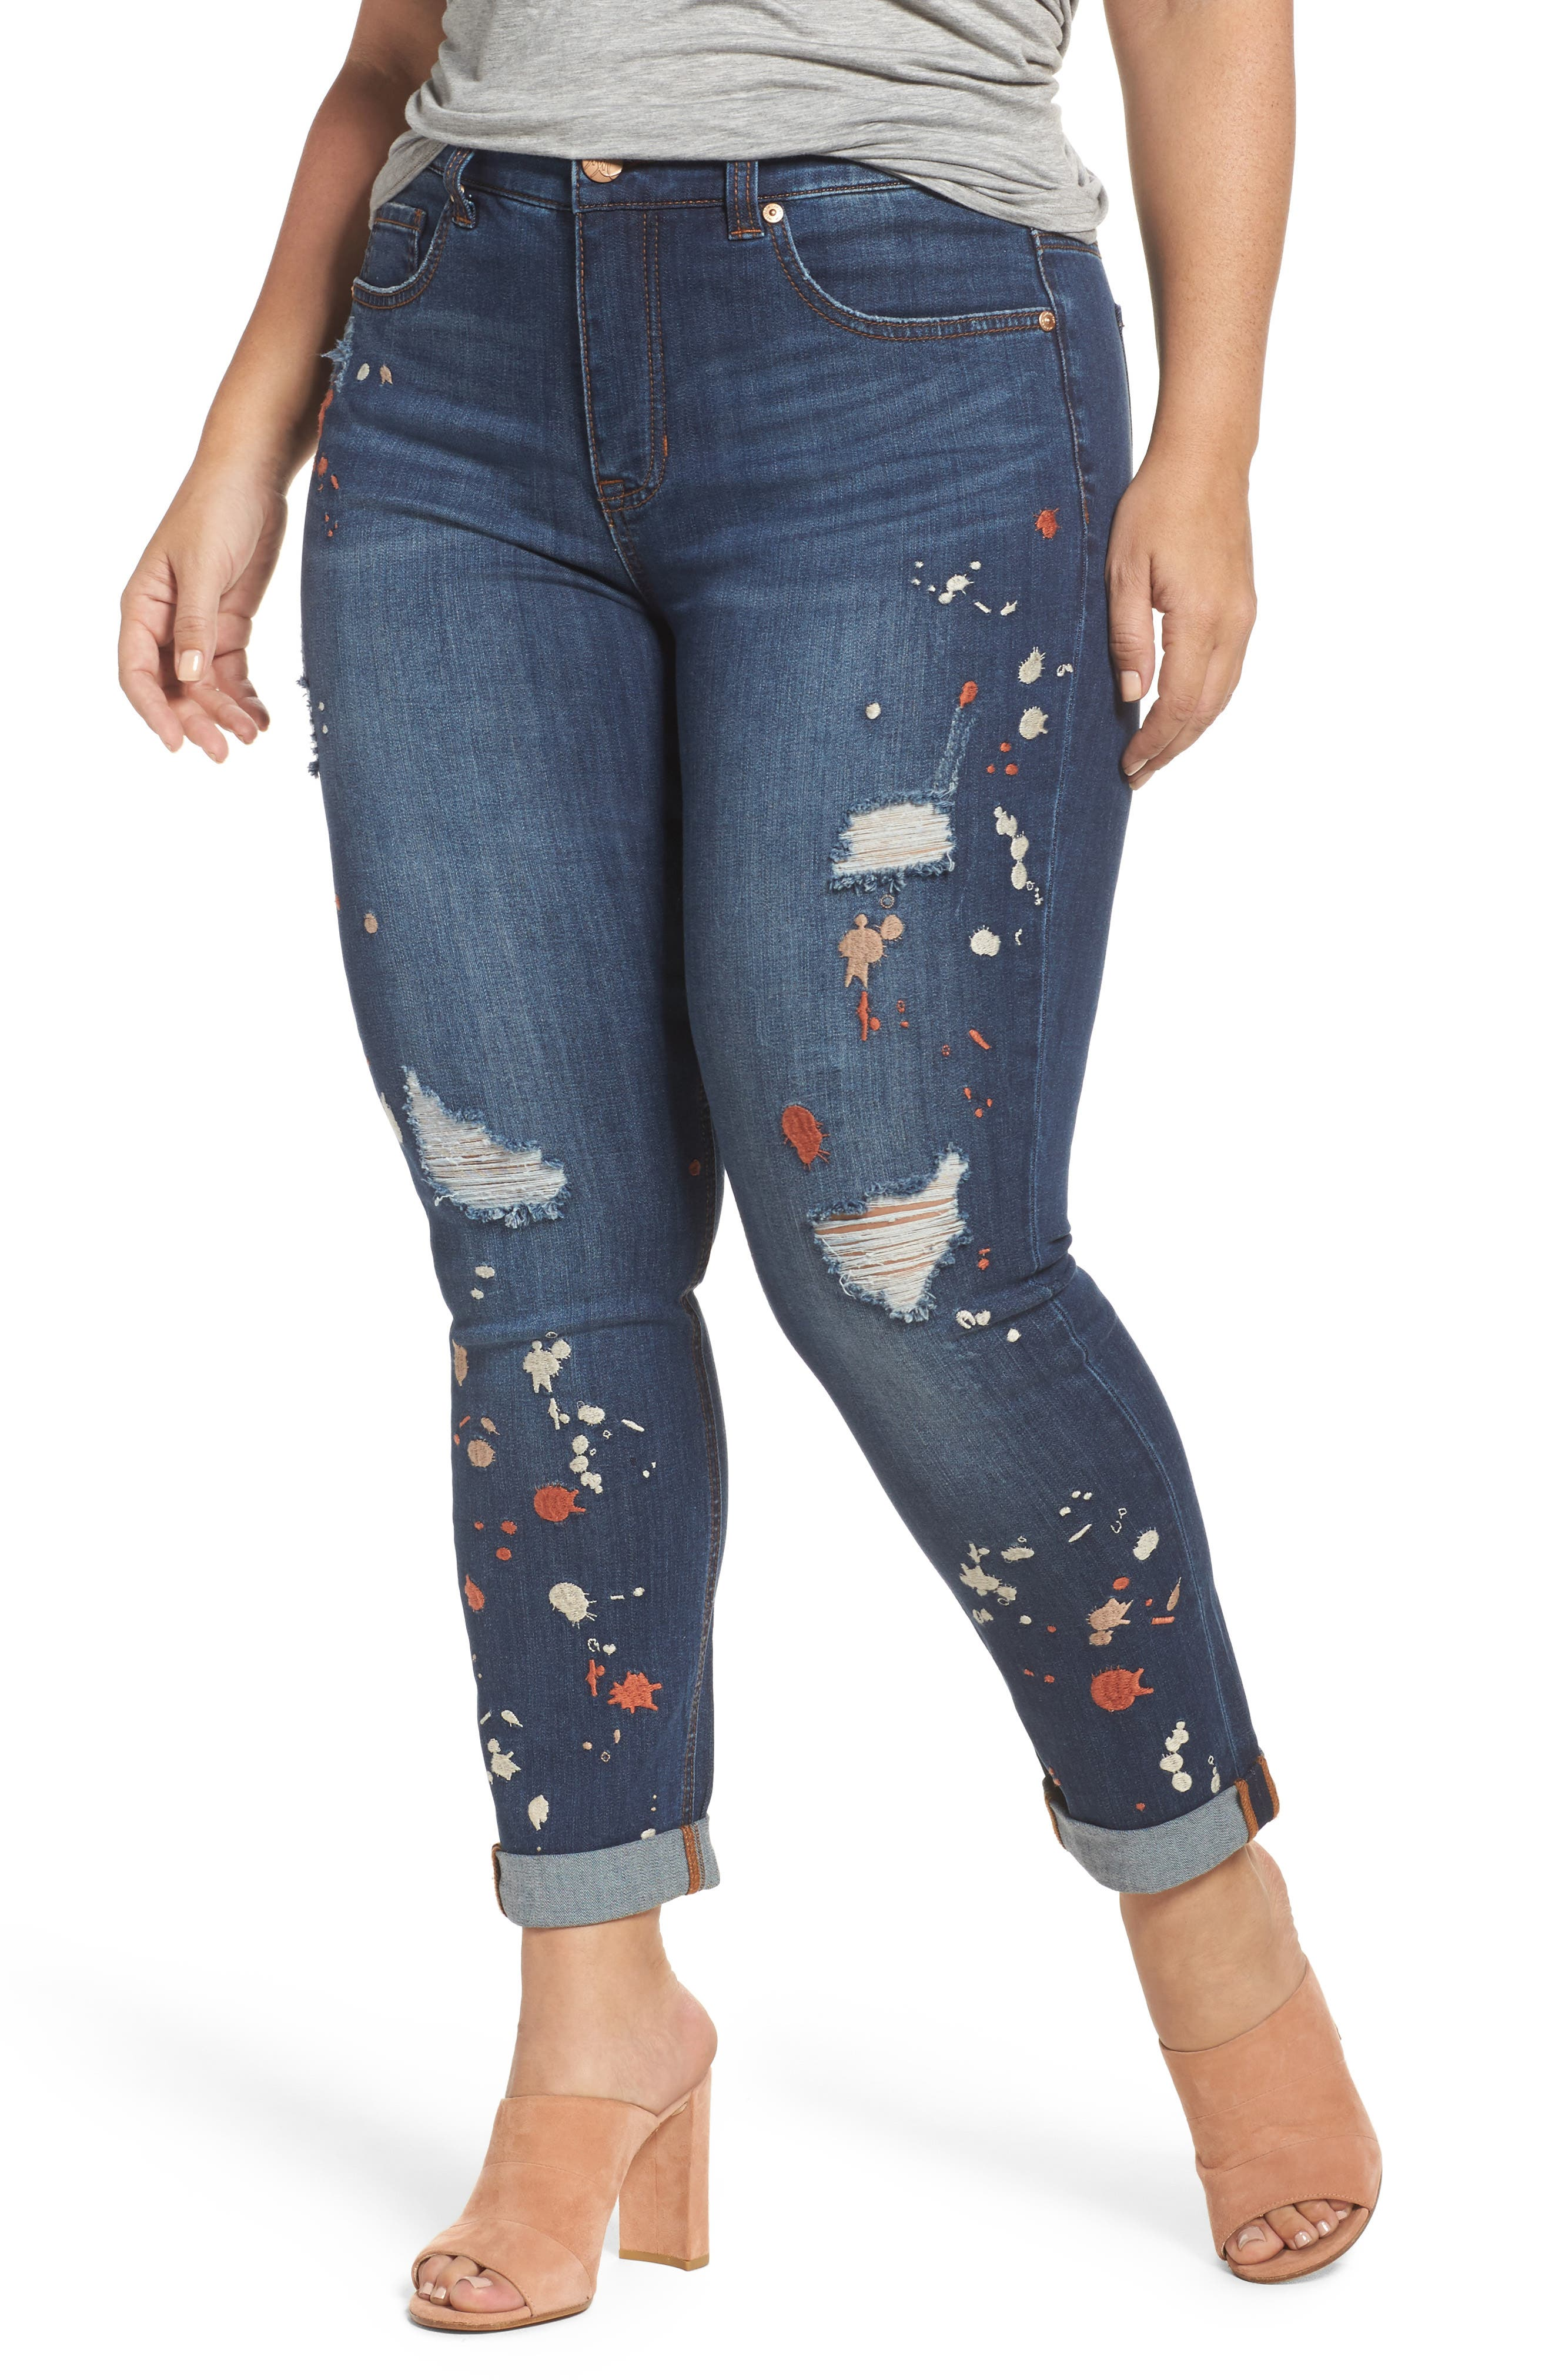 Alternate Image 1 Selected - Melissa McCarthy Seven7 Paint Splatter Stretch Skinny Jeans (Plus Size)